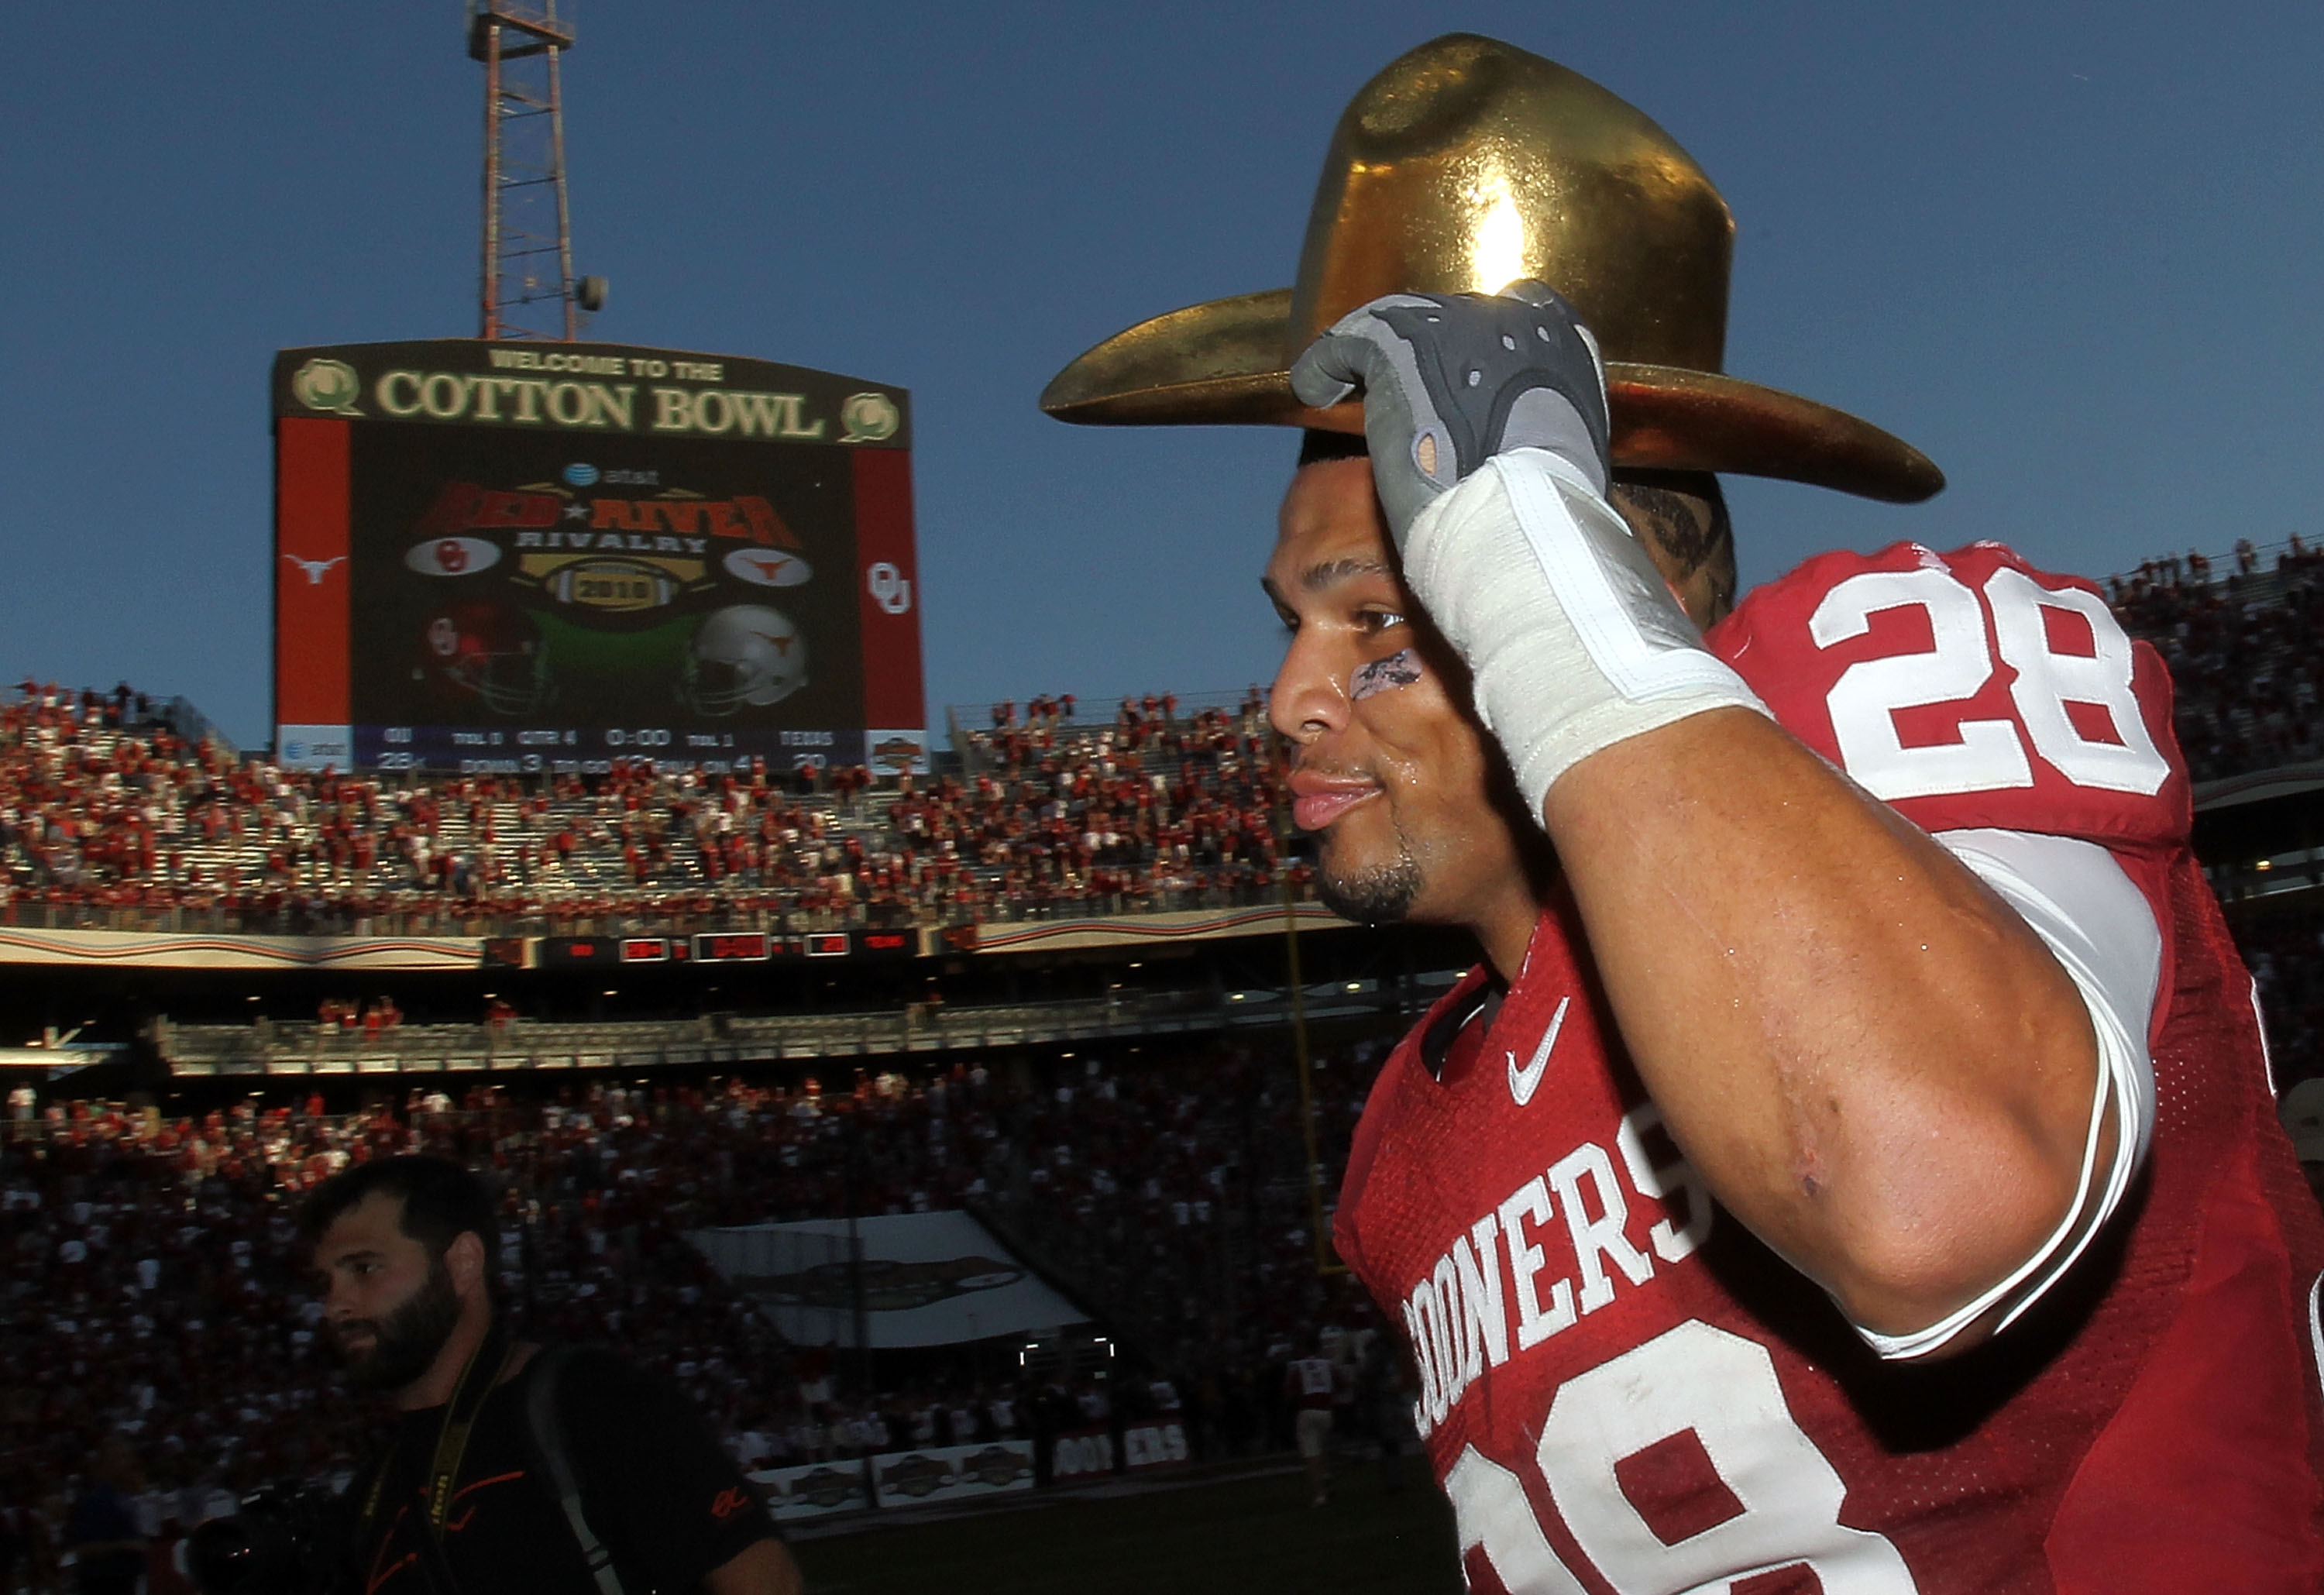 DALLAS - OCTOBER 02:  Linebacker Travis Lewis #28 of the Oklahoma Sooners wears the Golden Hat trophy after a 28-20 win against the Texas Longhorns at the Cotton Bowl on October 2, 2010 in Dallas, Texas.  (Photo by Ronald Martinez/Getty Images)